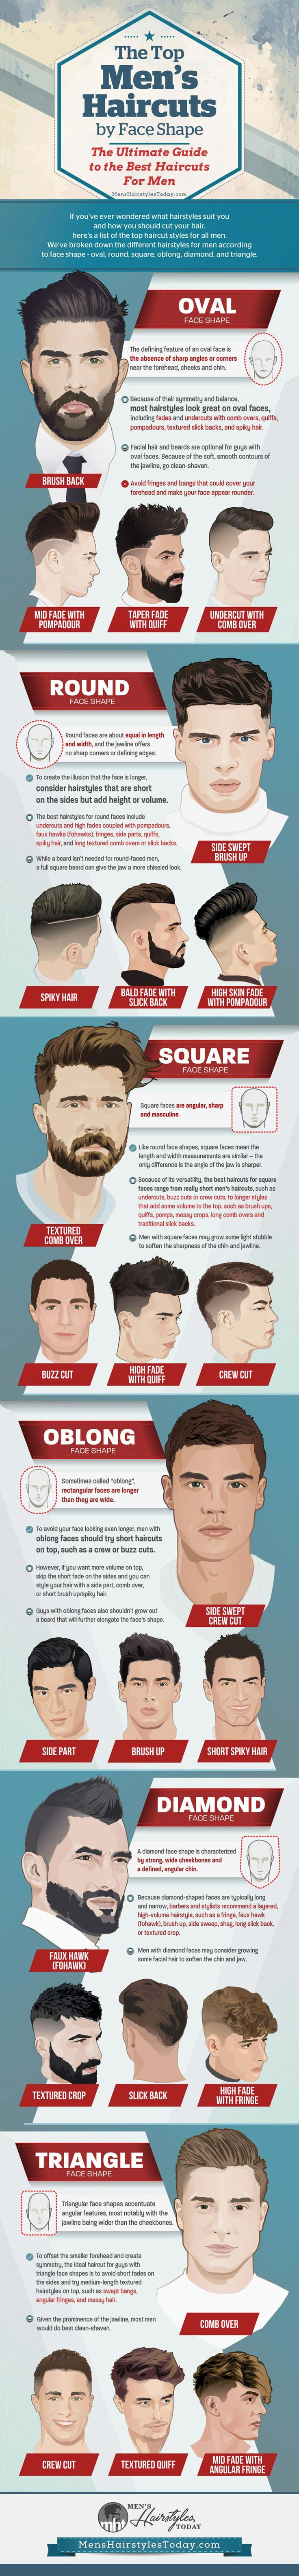 Hairstyle According To My Face 25 Best Ideas About Male Haircuts On Pinterest Male Hairstyles